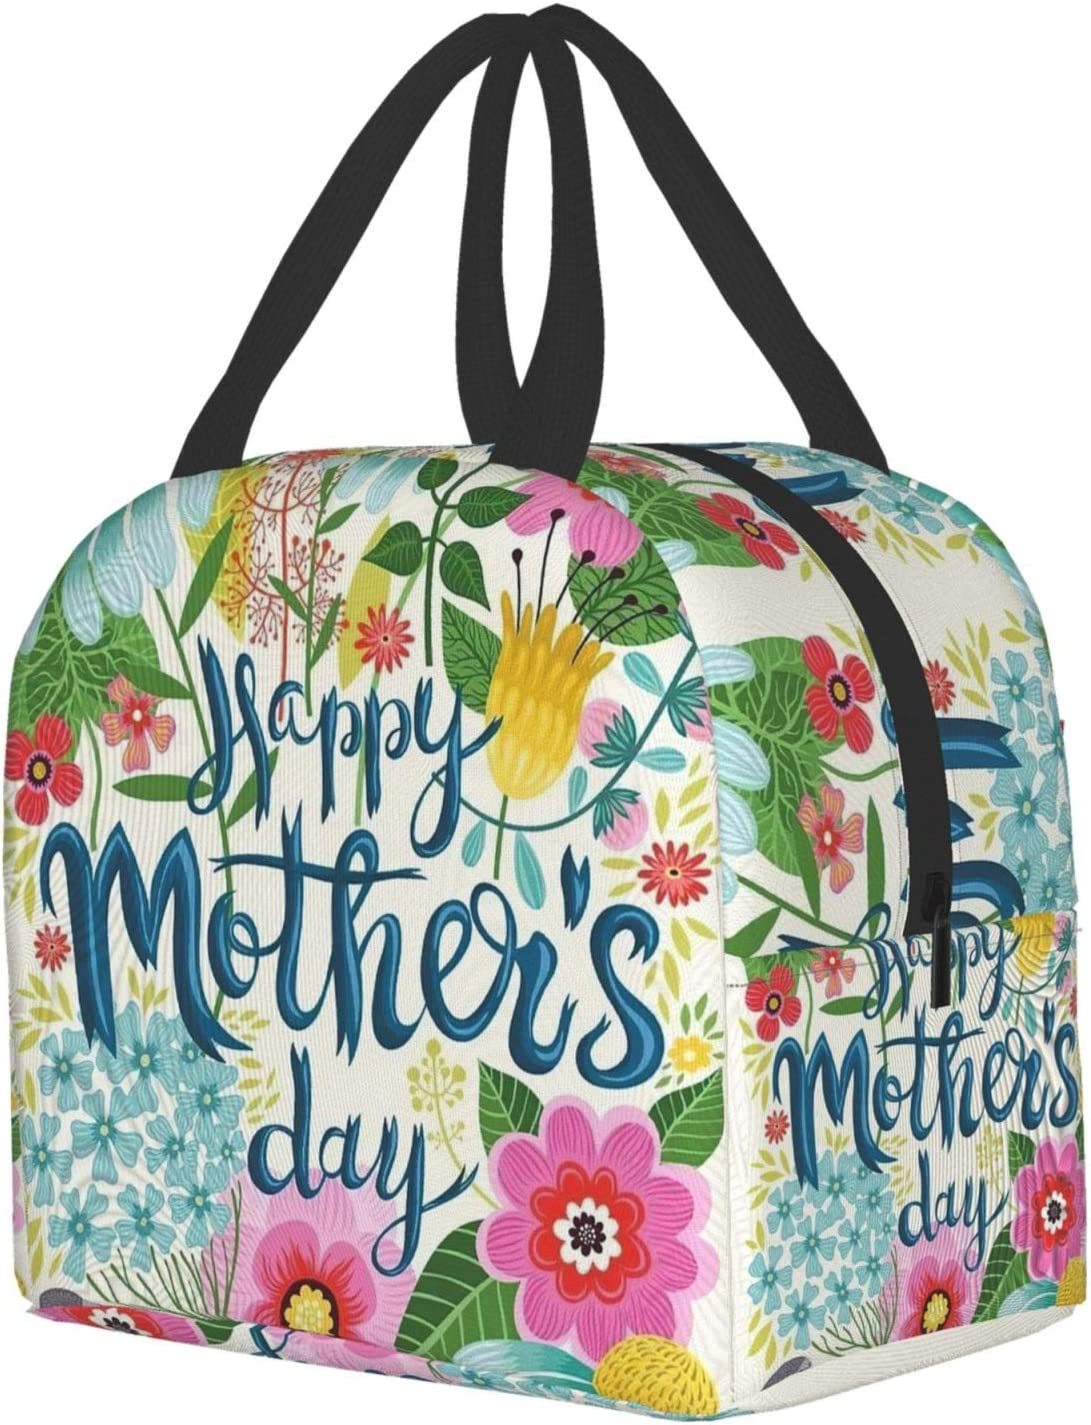 Mom Gift Lunch Box Insulated Tote Waterproof Bag Reusable Thick With Zipper For Women Kids Men Best Gift